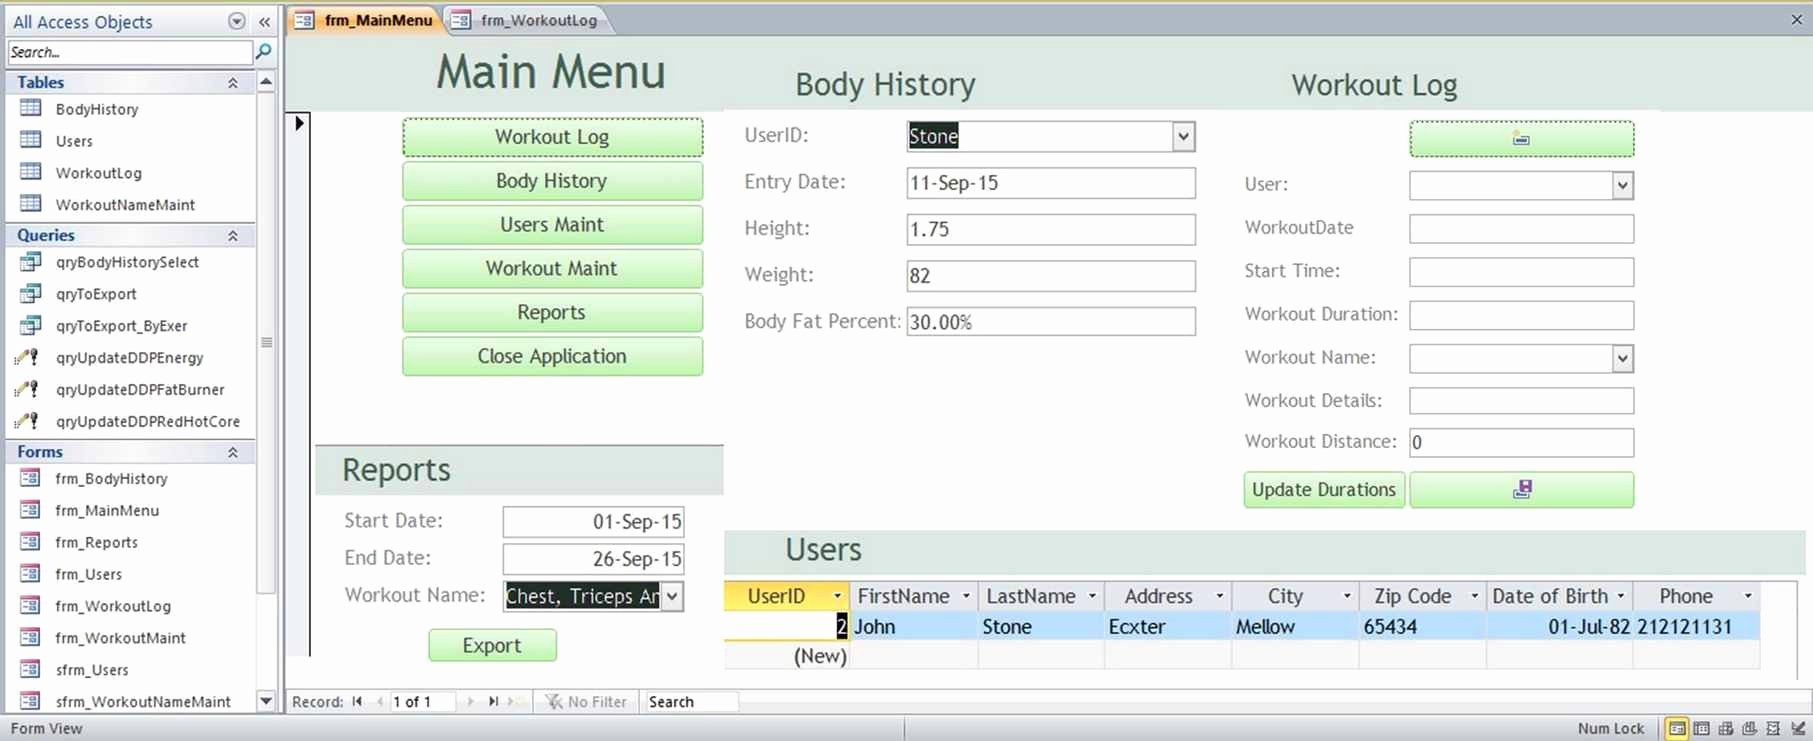 Ms Access Inventory Template Fresh Microsoft Access Family Tree Genealogy History Templates